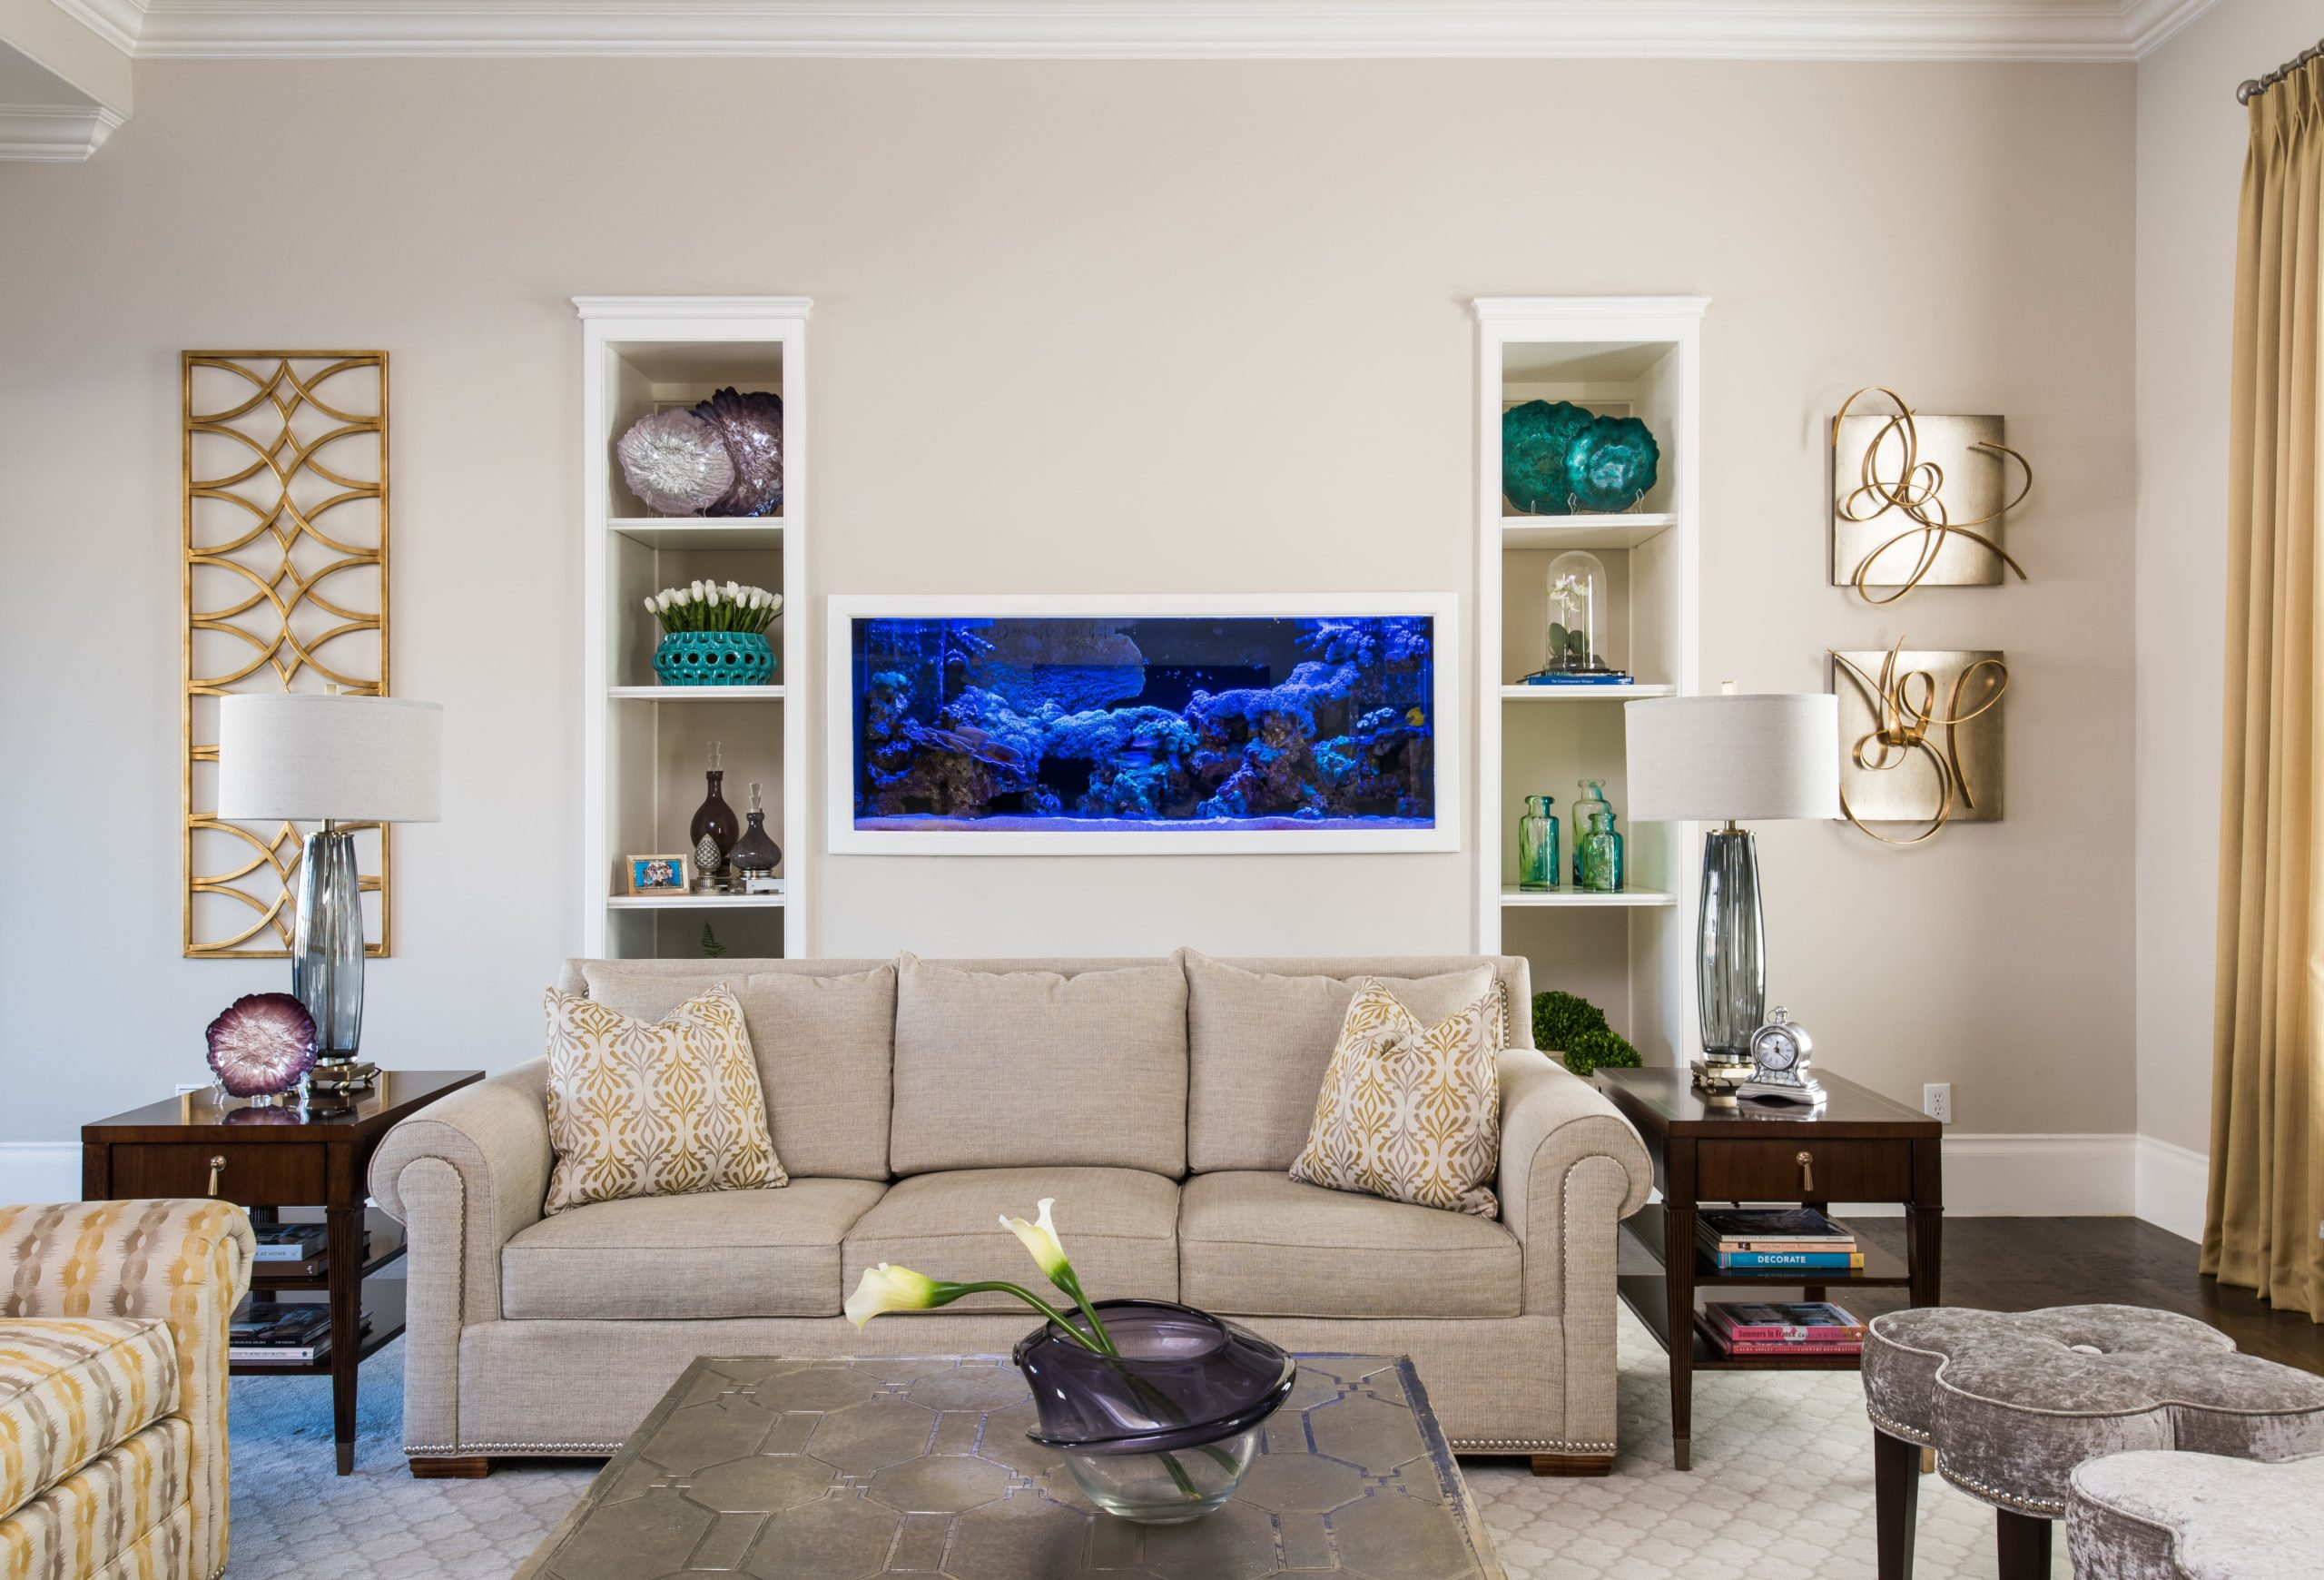 Natural Hues & Blues 4 - Dallas Interior Designer serving Plano, Frisco, Dallas, Allen for Decorating Den Interiors D'KOR HOME by Dee Frazier Interiors